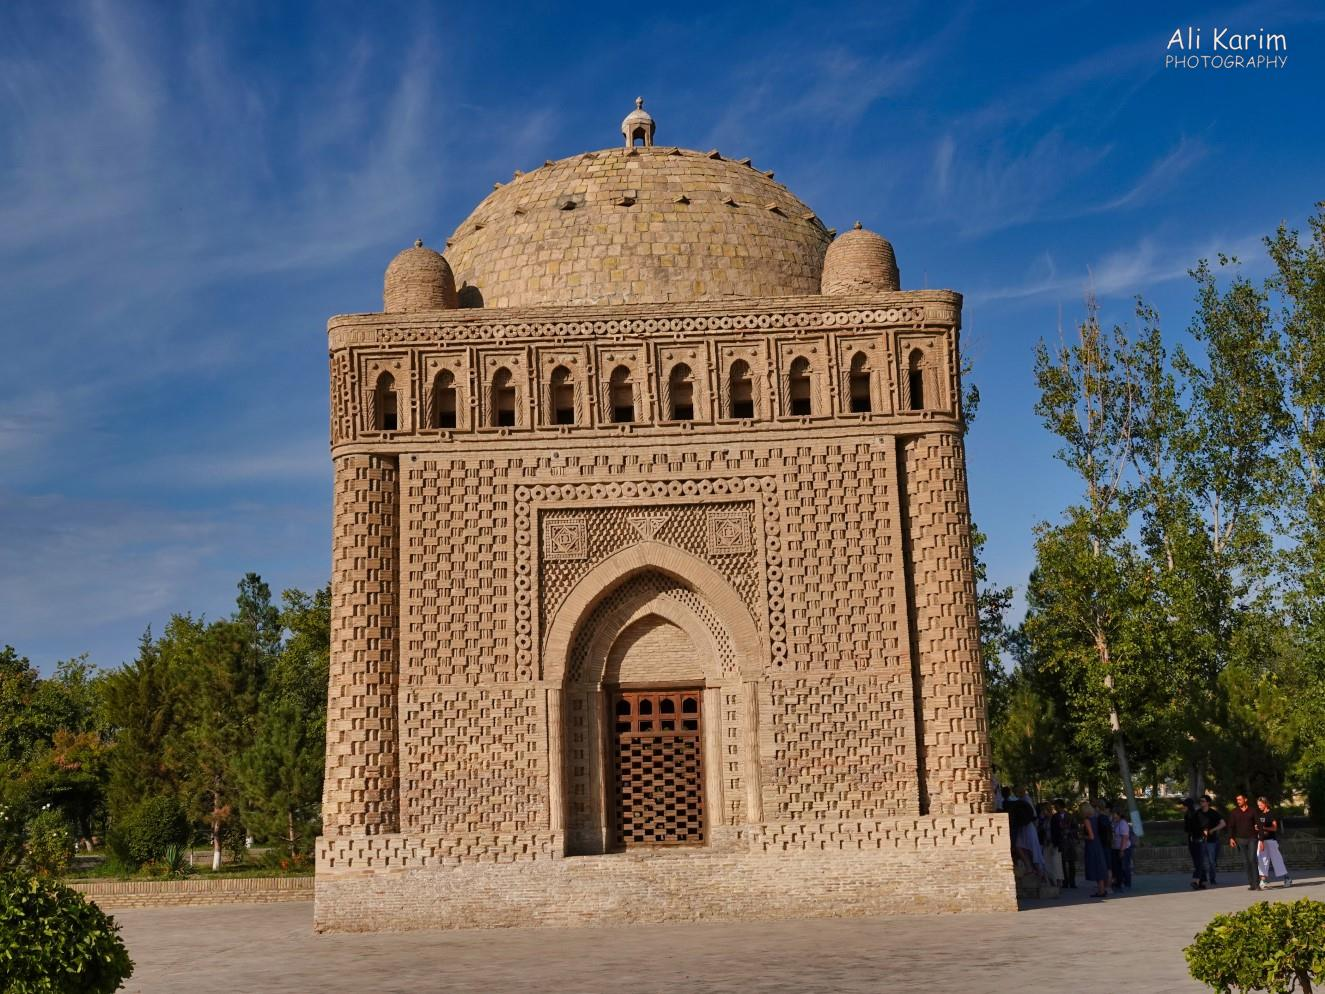 Bukhara, Oct 2019, Mausoleum of Ismoil Somoni; the brickwork was quite unique; and the style was borrowed for the design of the Ismaili Center in Dushanbe